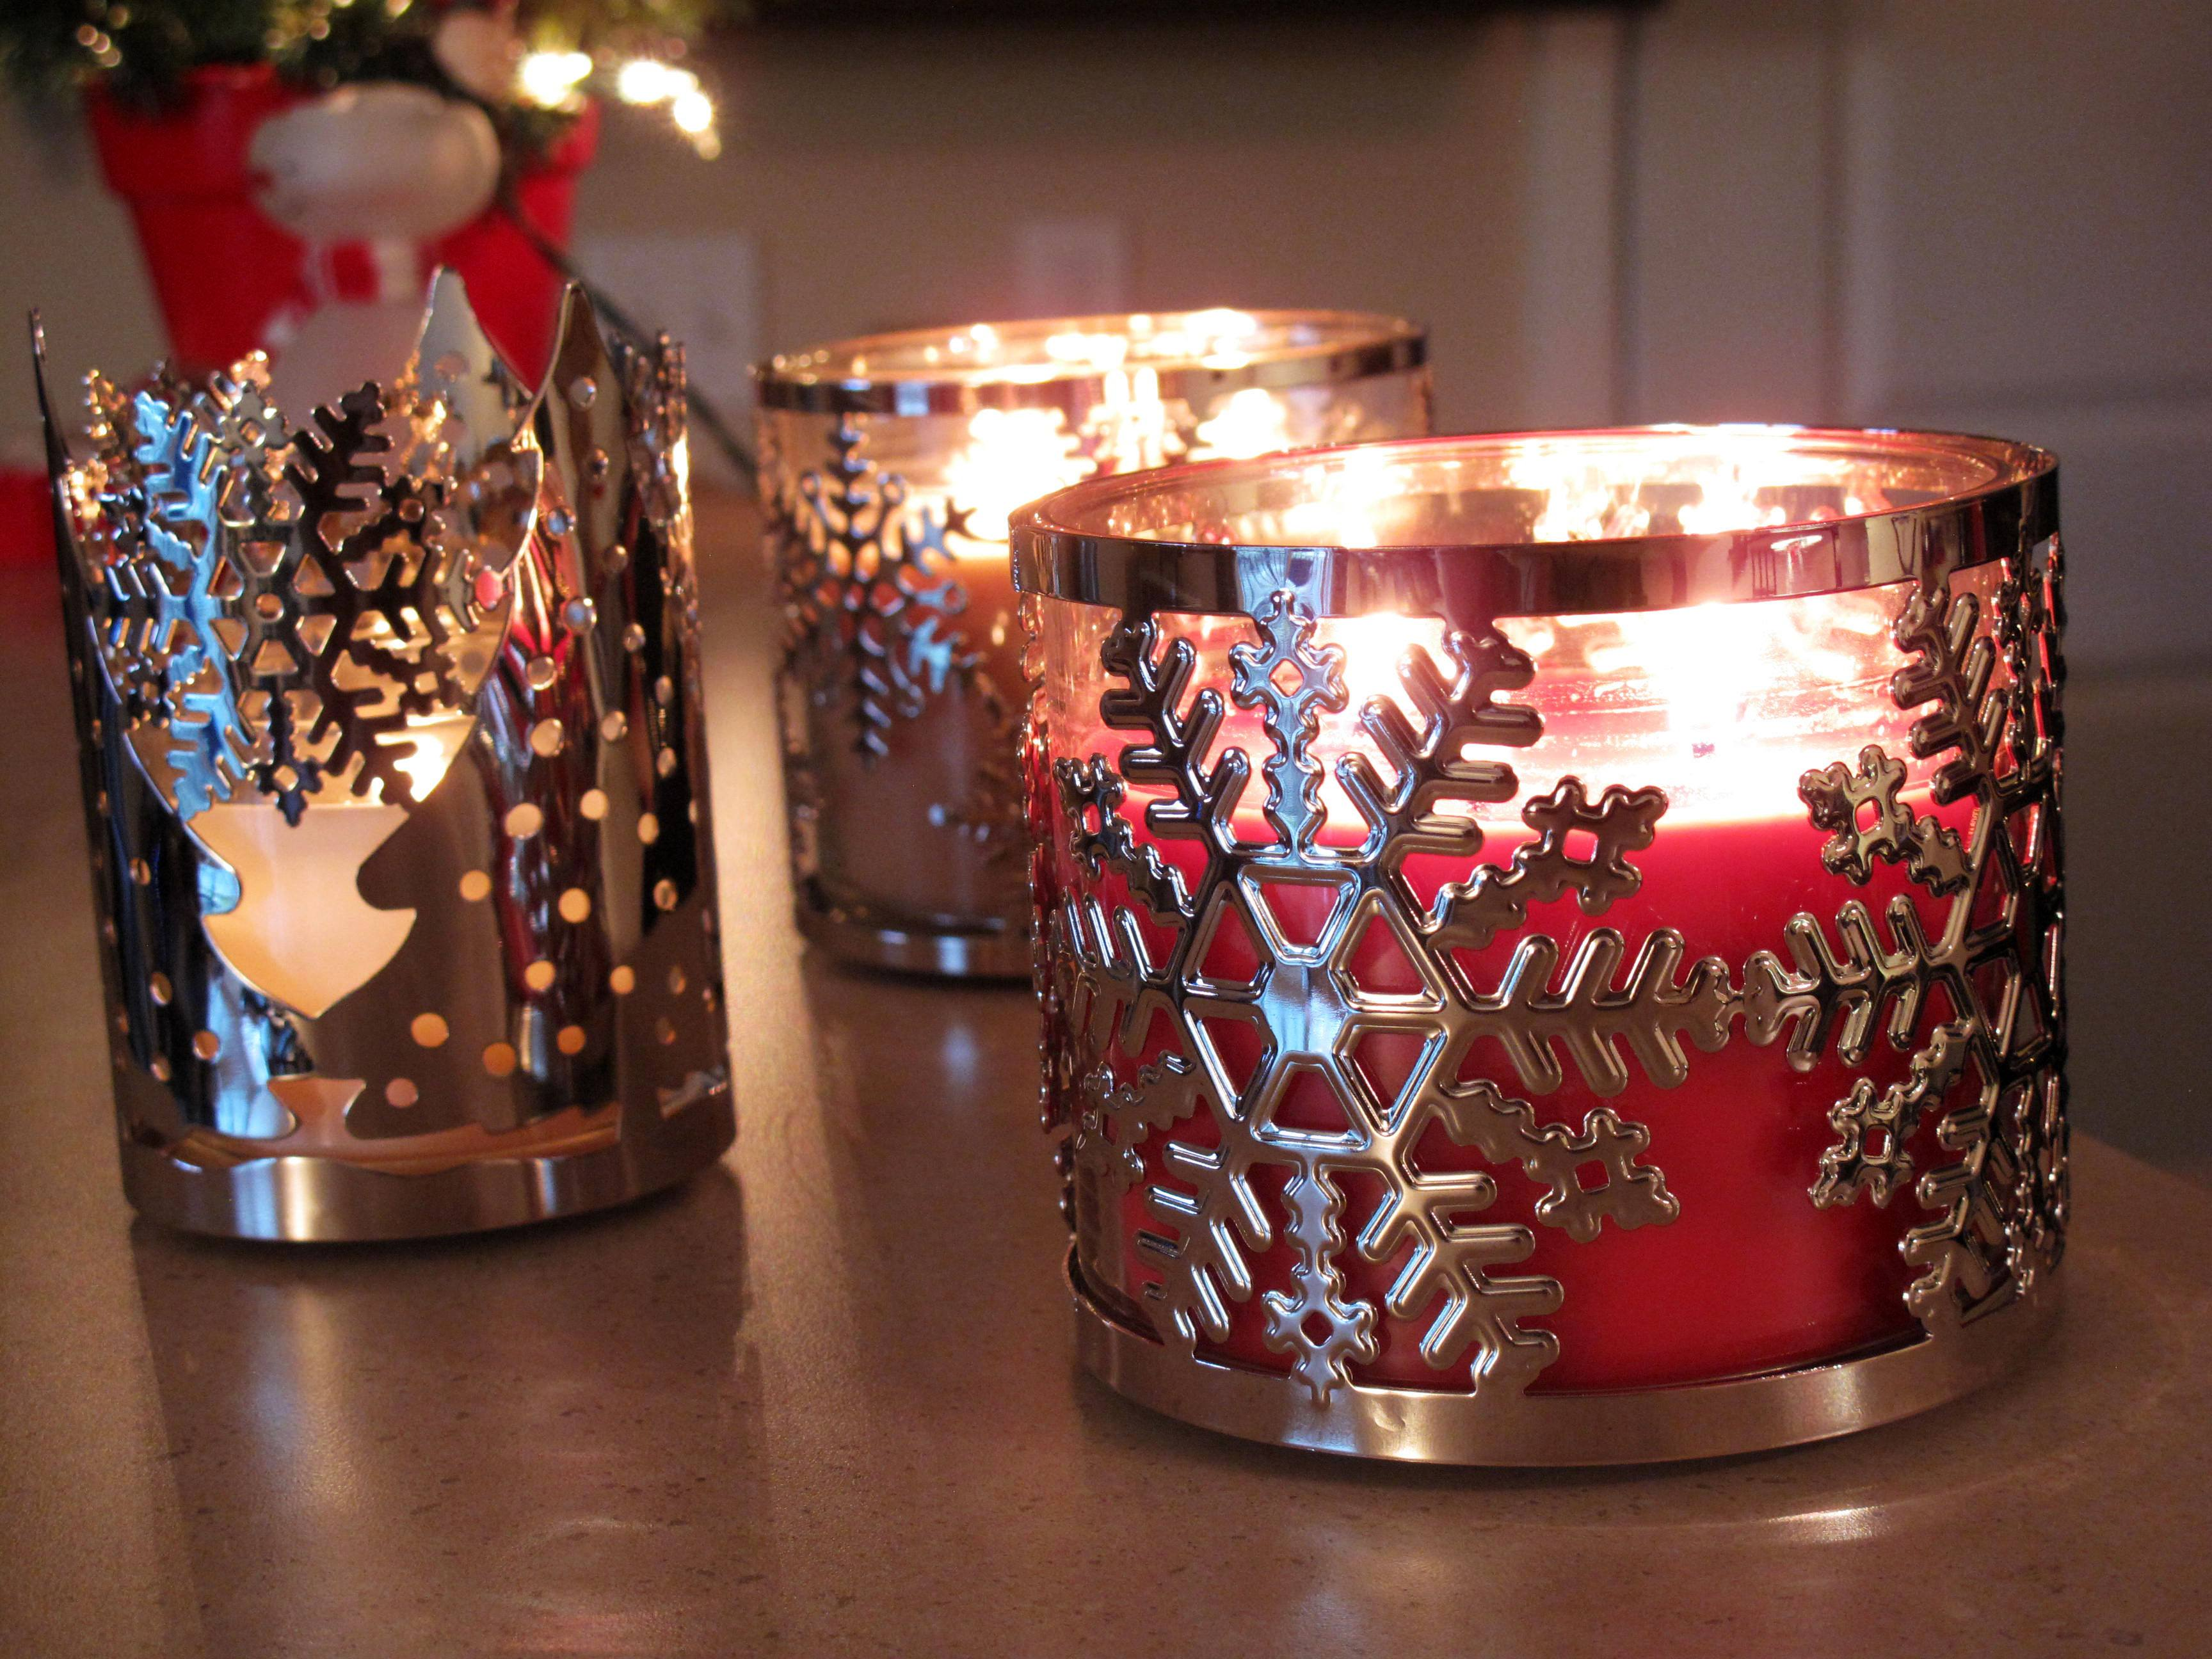 Festive metal candle holders with tree and snowflake designs